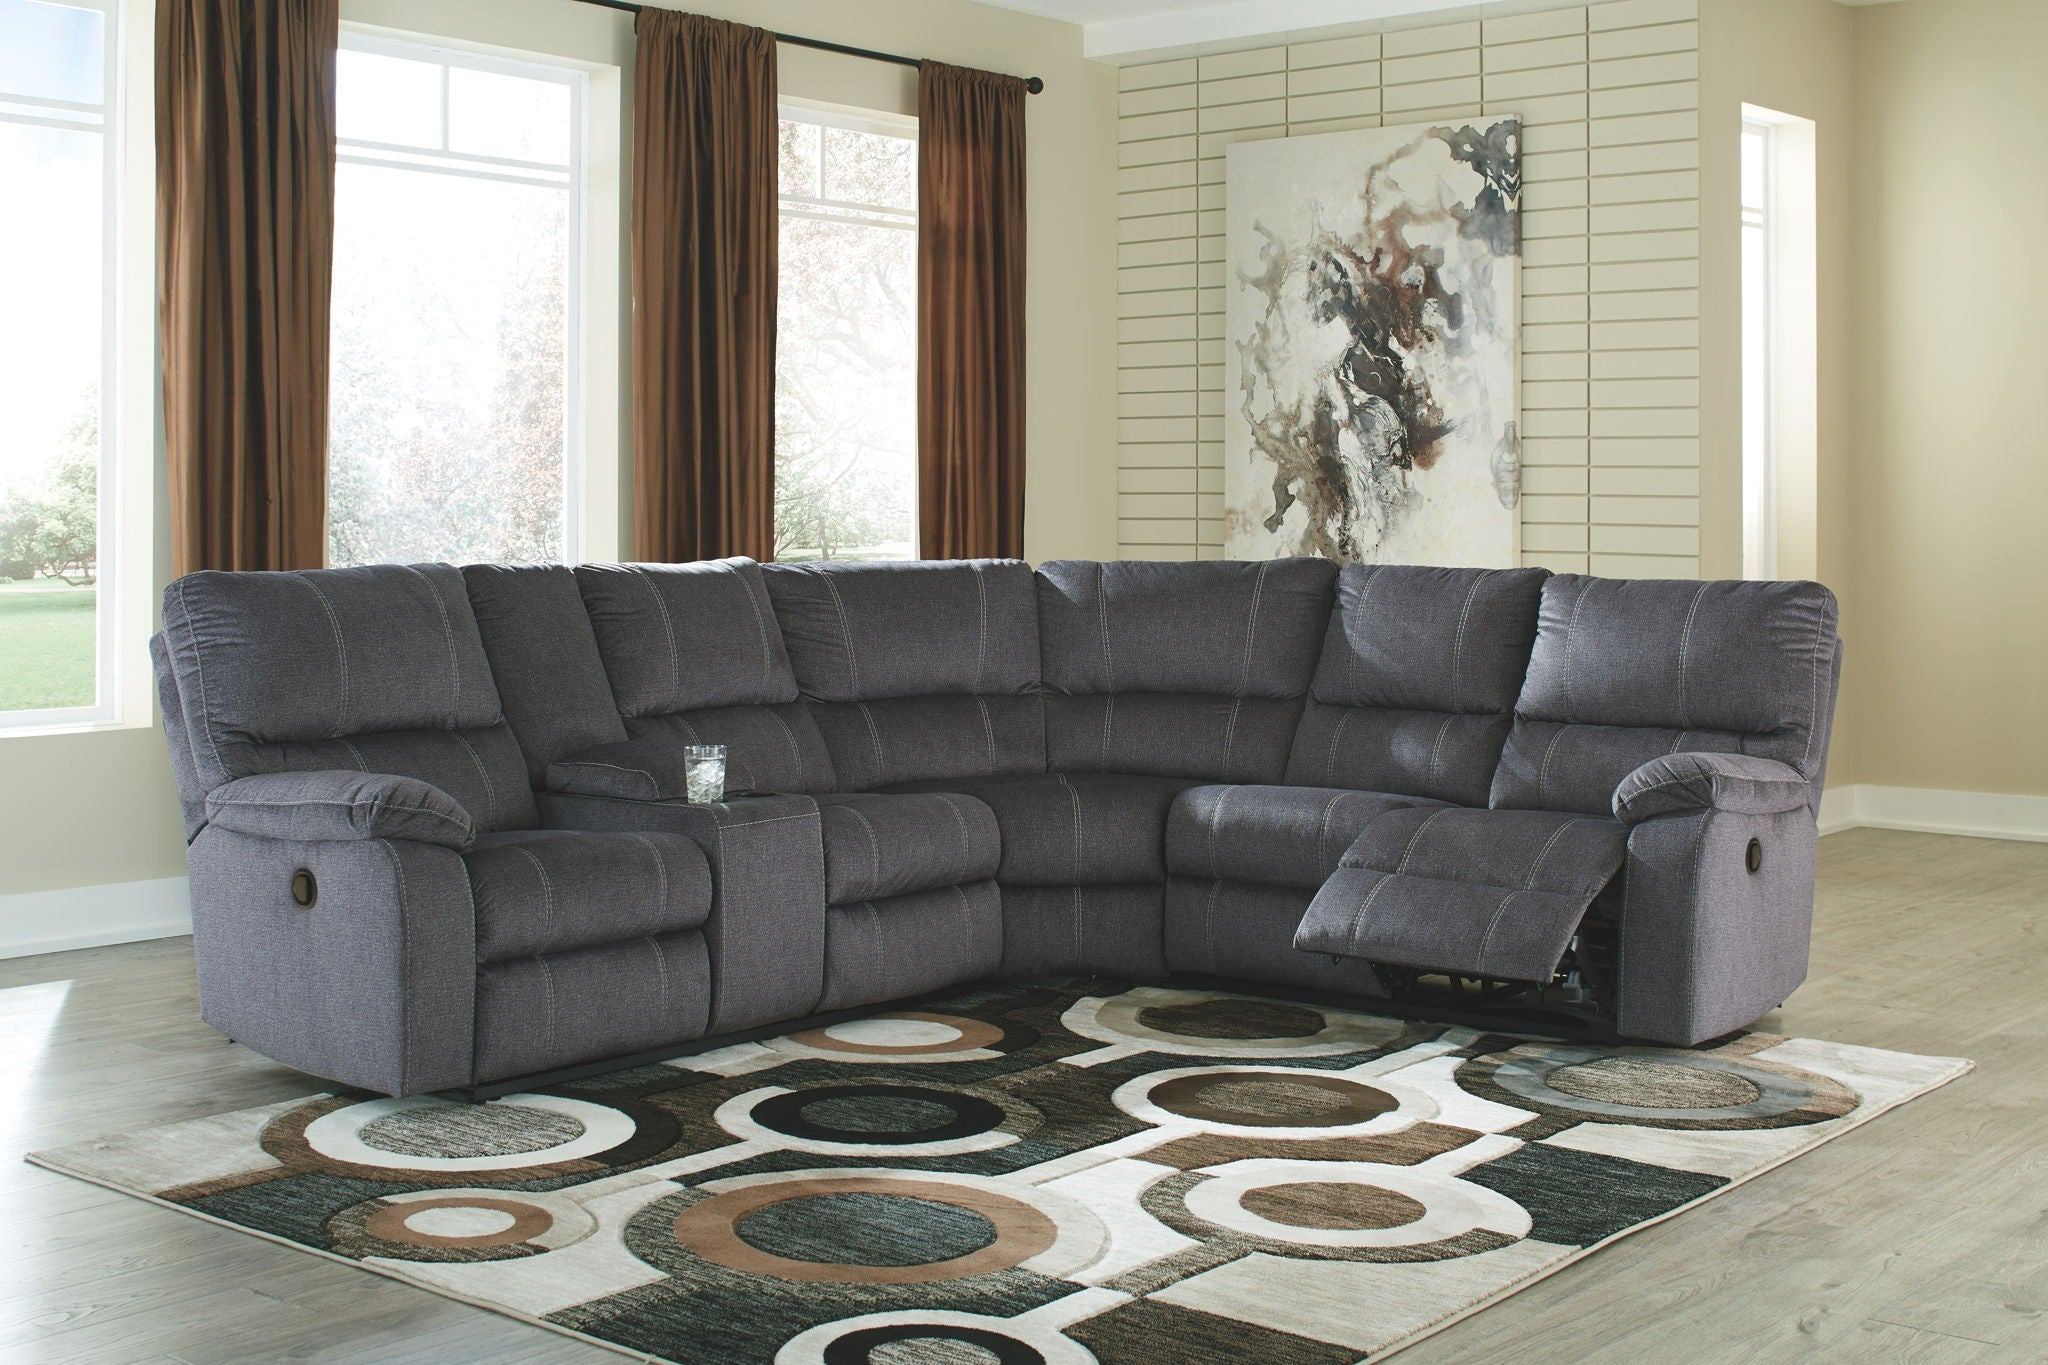 Urbino Reclining Sectional | Calgary's Furniture Store